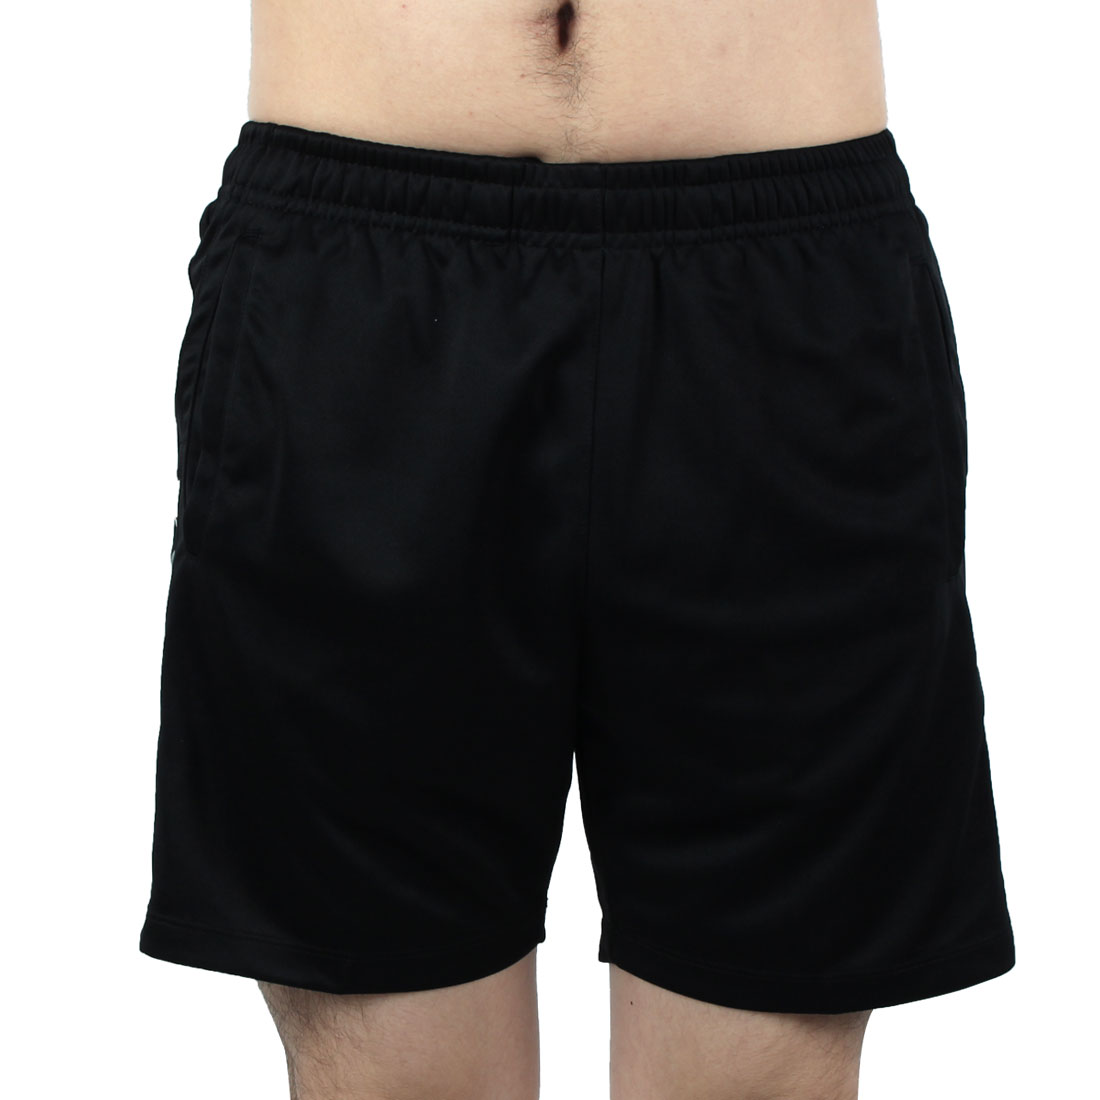 Outdoor Athletic Basketball Pocket Breathable Pantie Men Sports Shorts Black W32